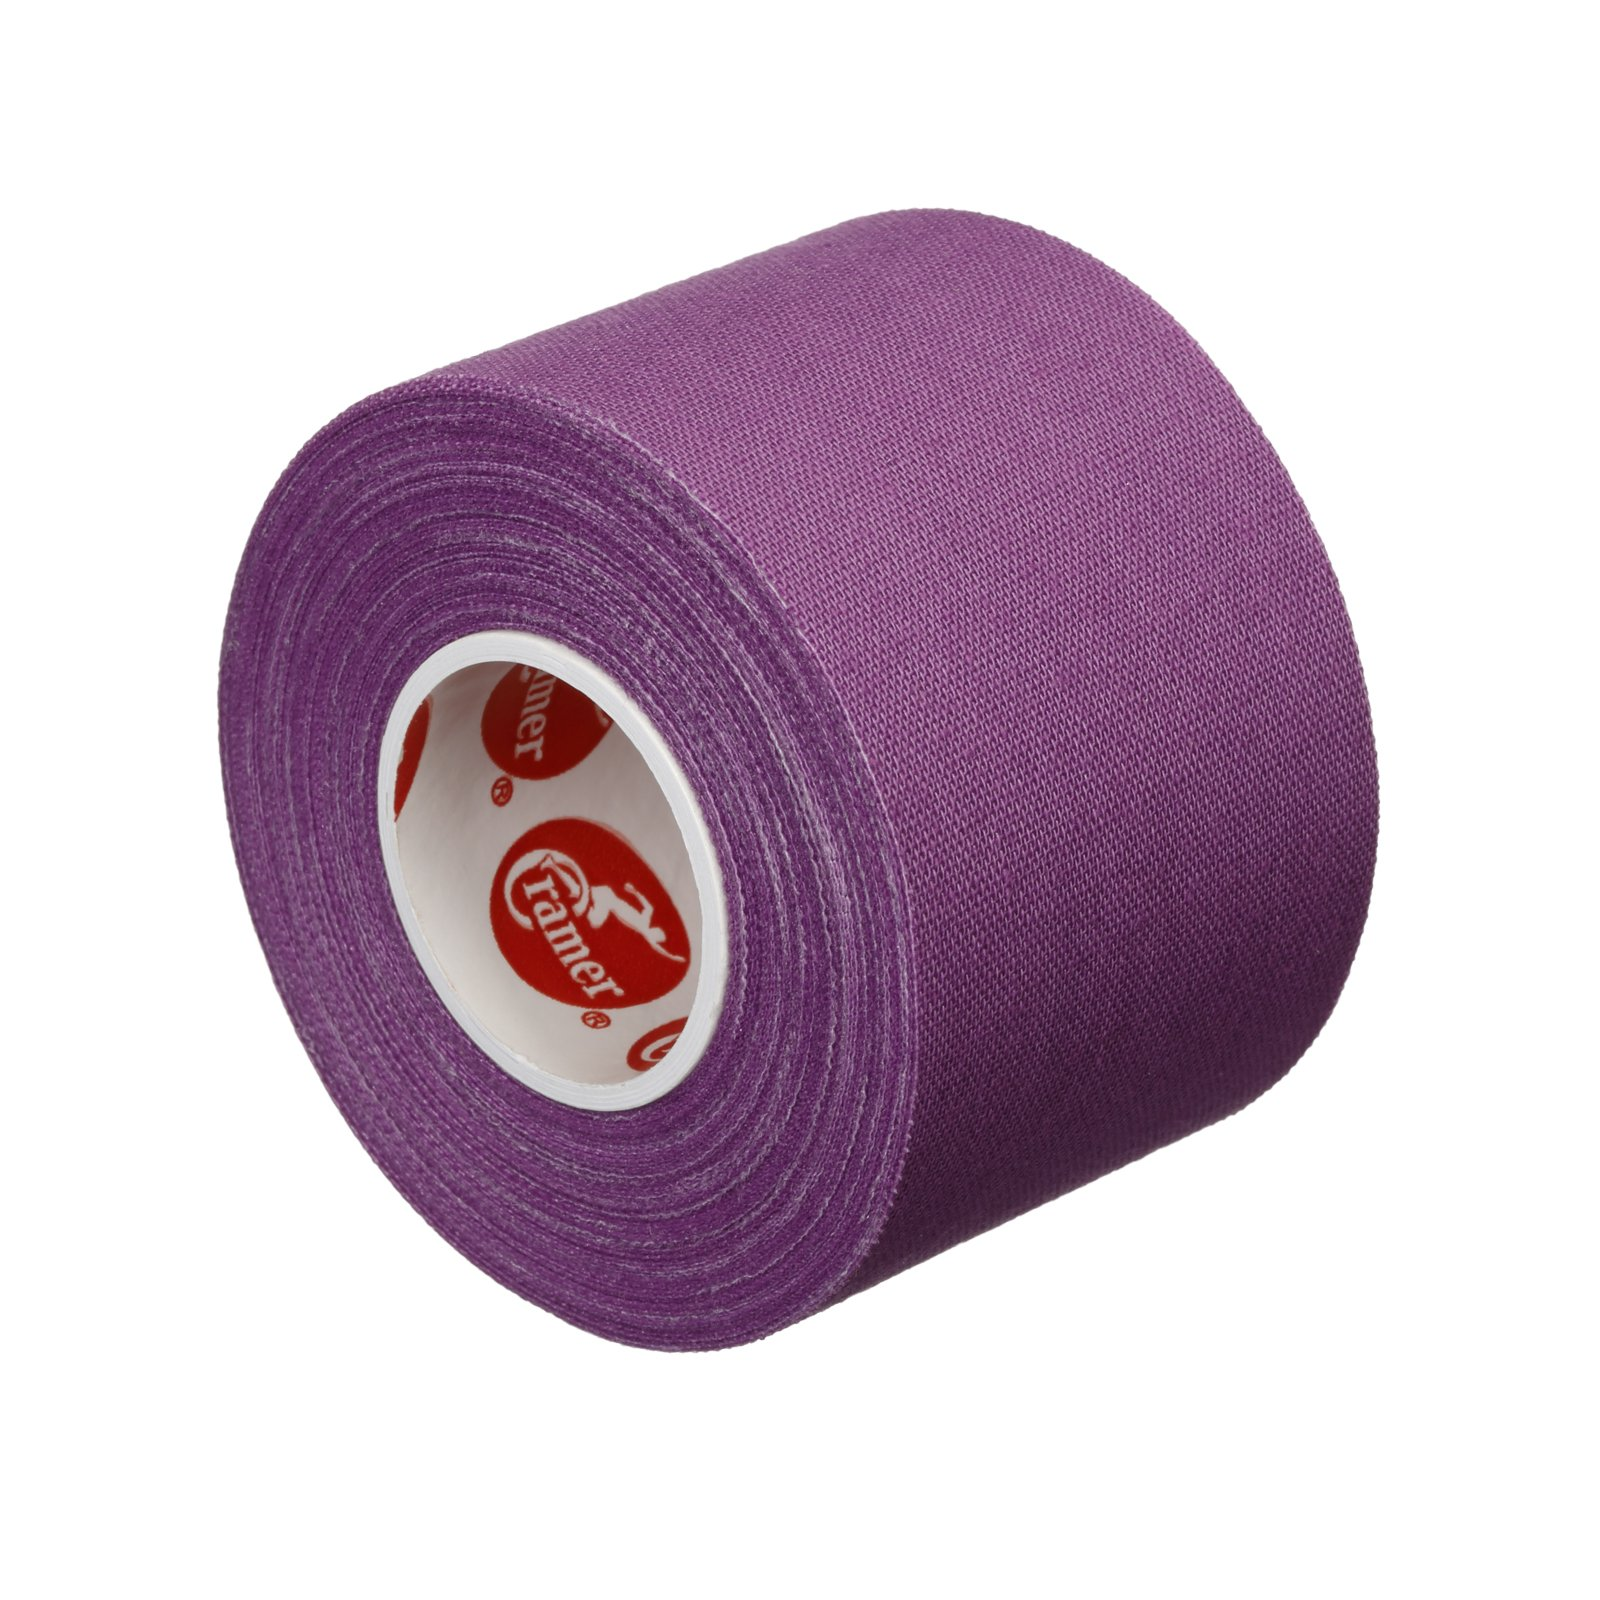 Cramer Athletic Tape, Purple, 1 1/2'' X 10 yd by Cramer